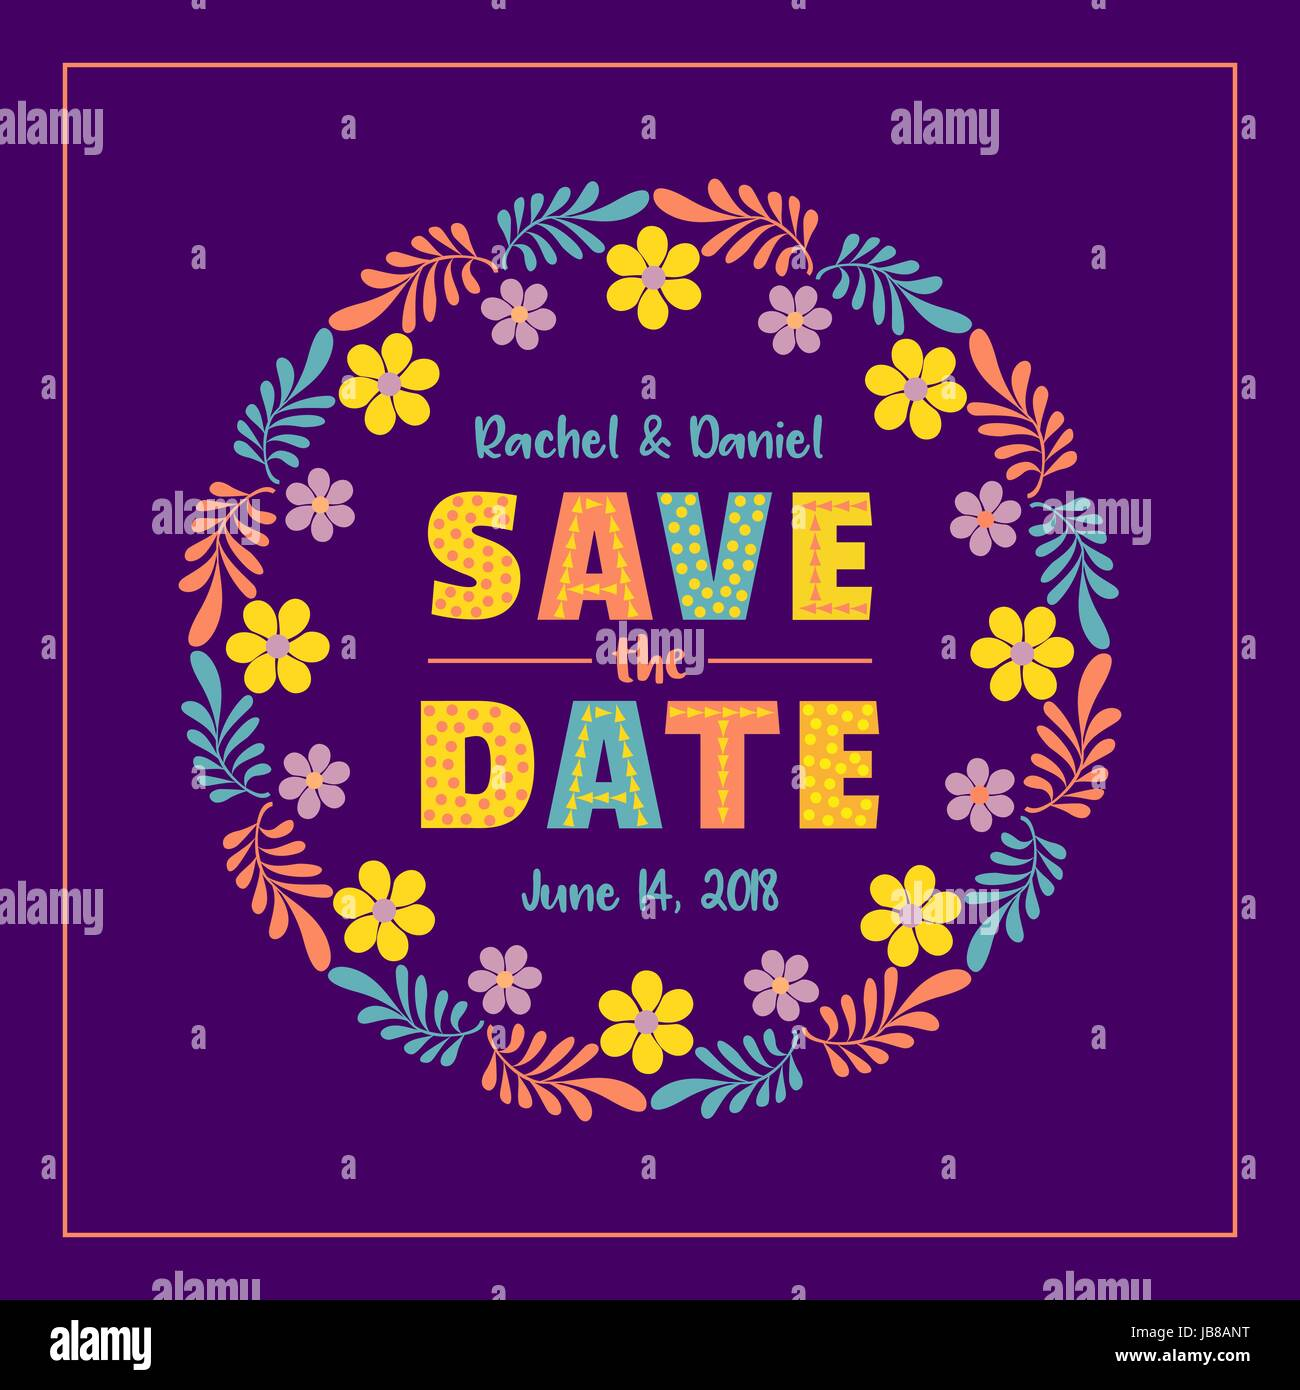 Save The Date Card Template Marriage Day Announcement